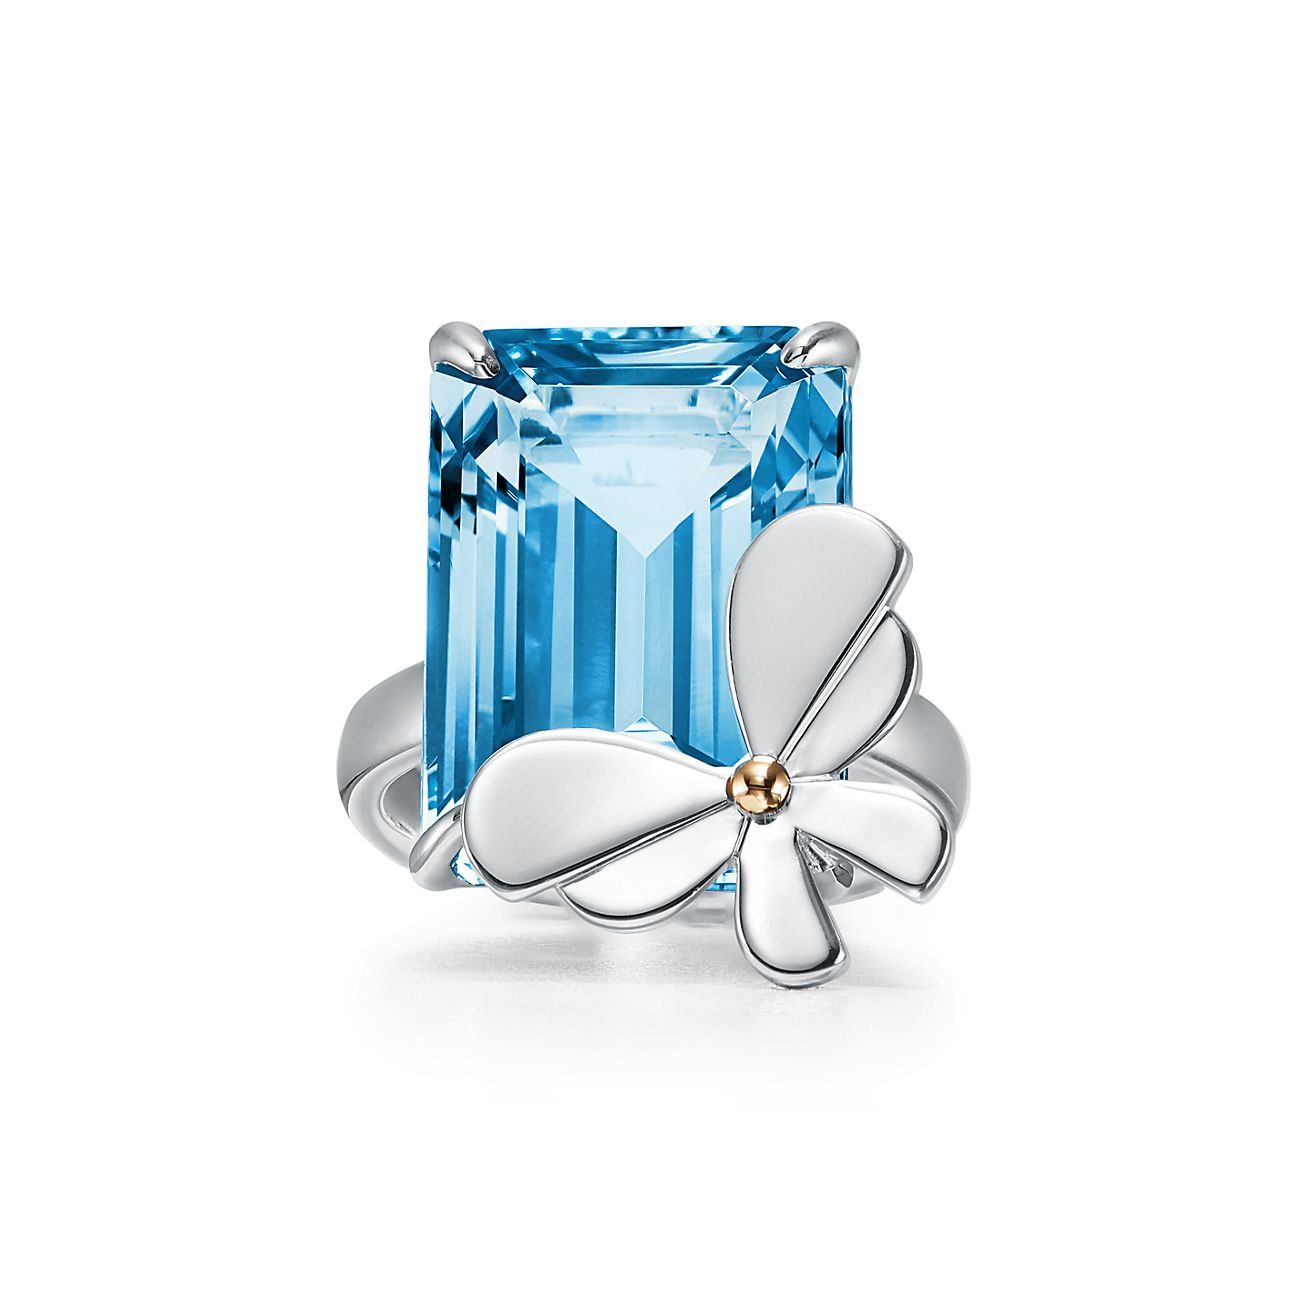 Silver ring and a blue topaz